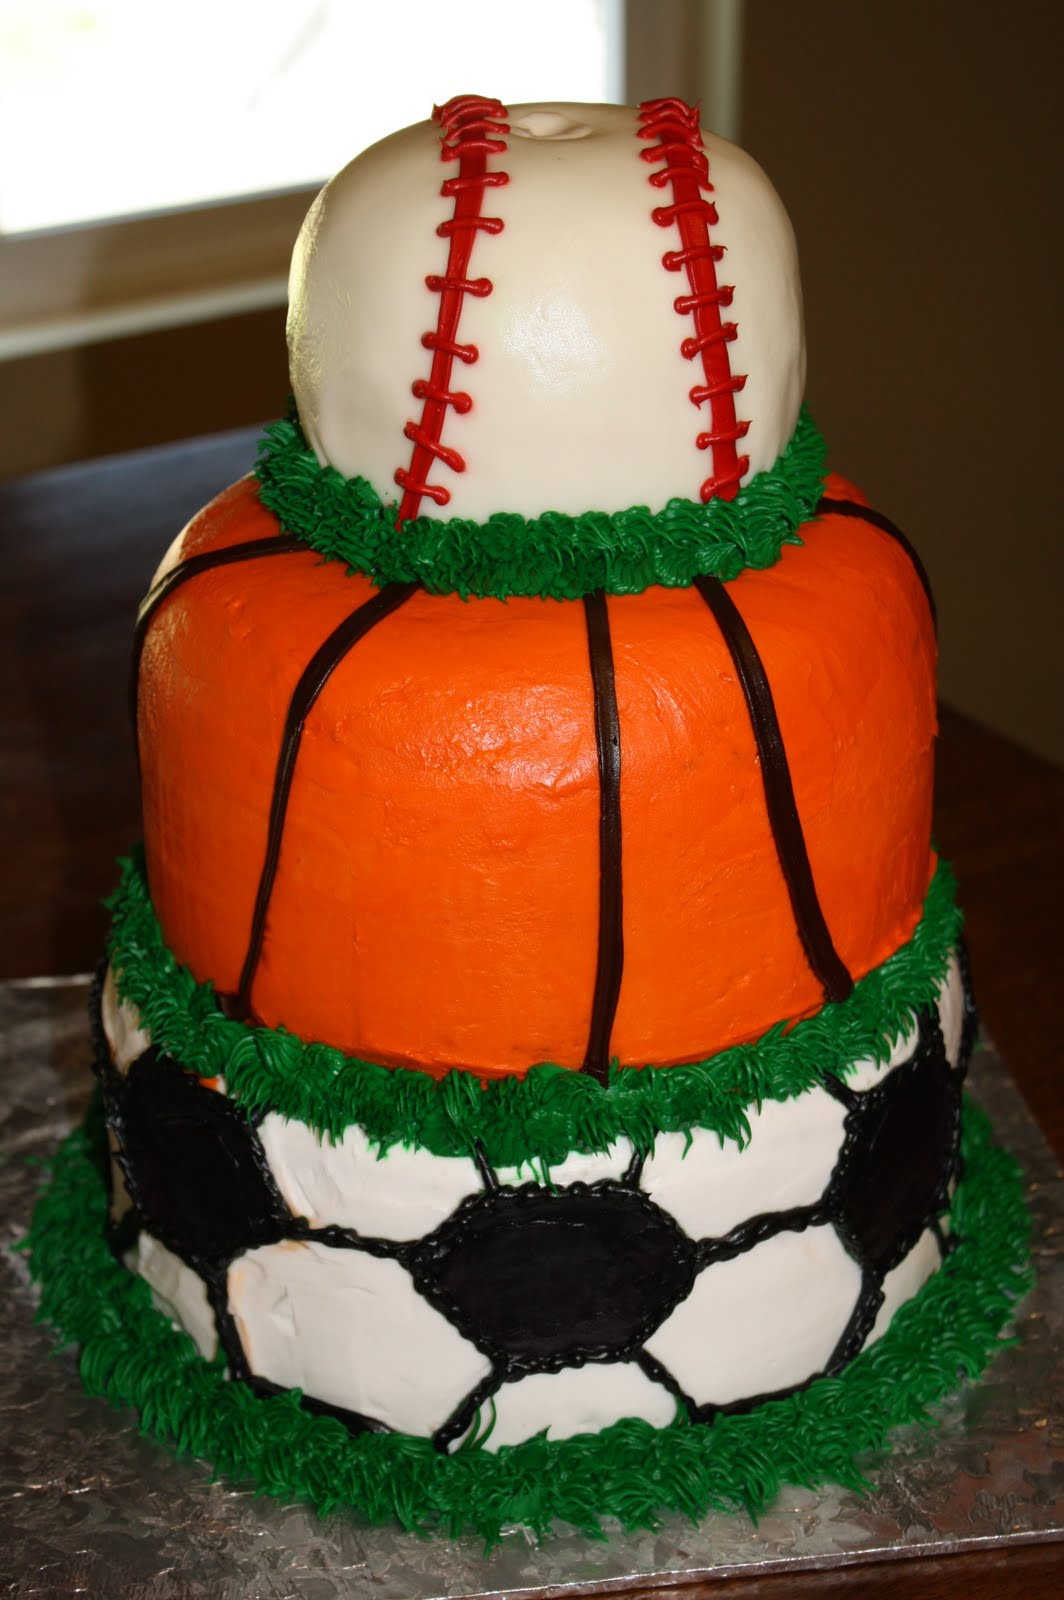 Shelli Belli Cakes Sports Lover Tiered Cake